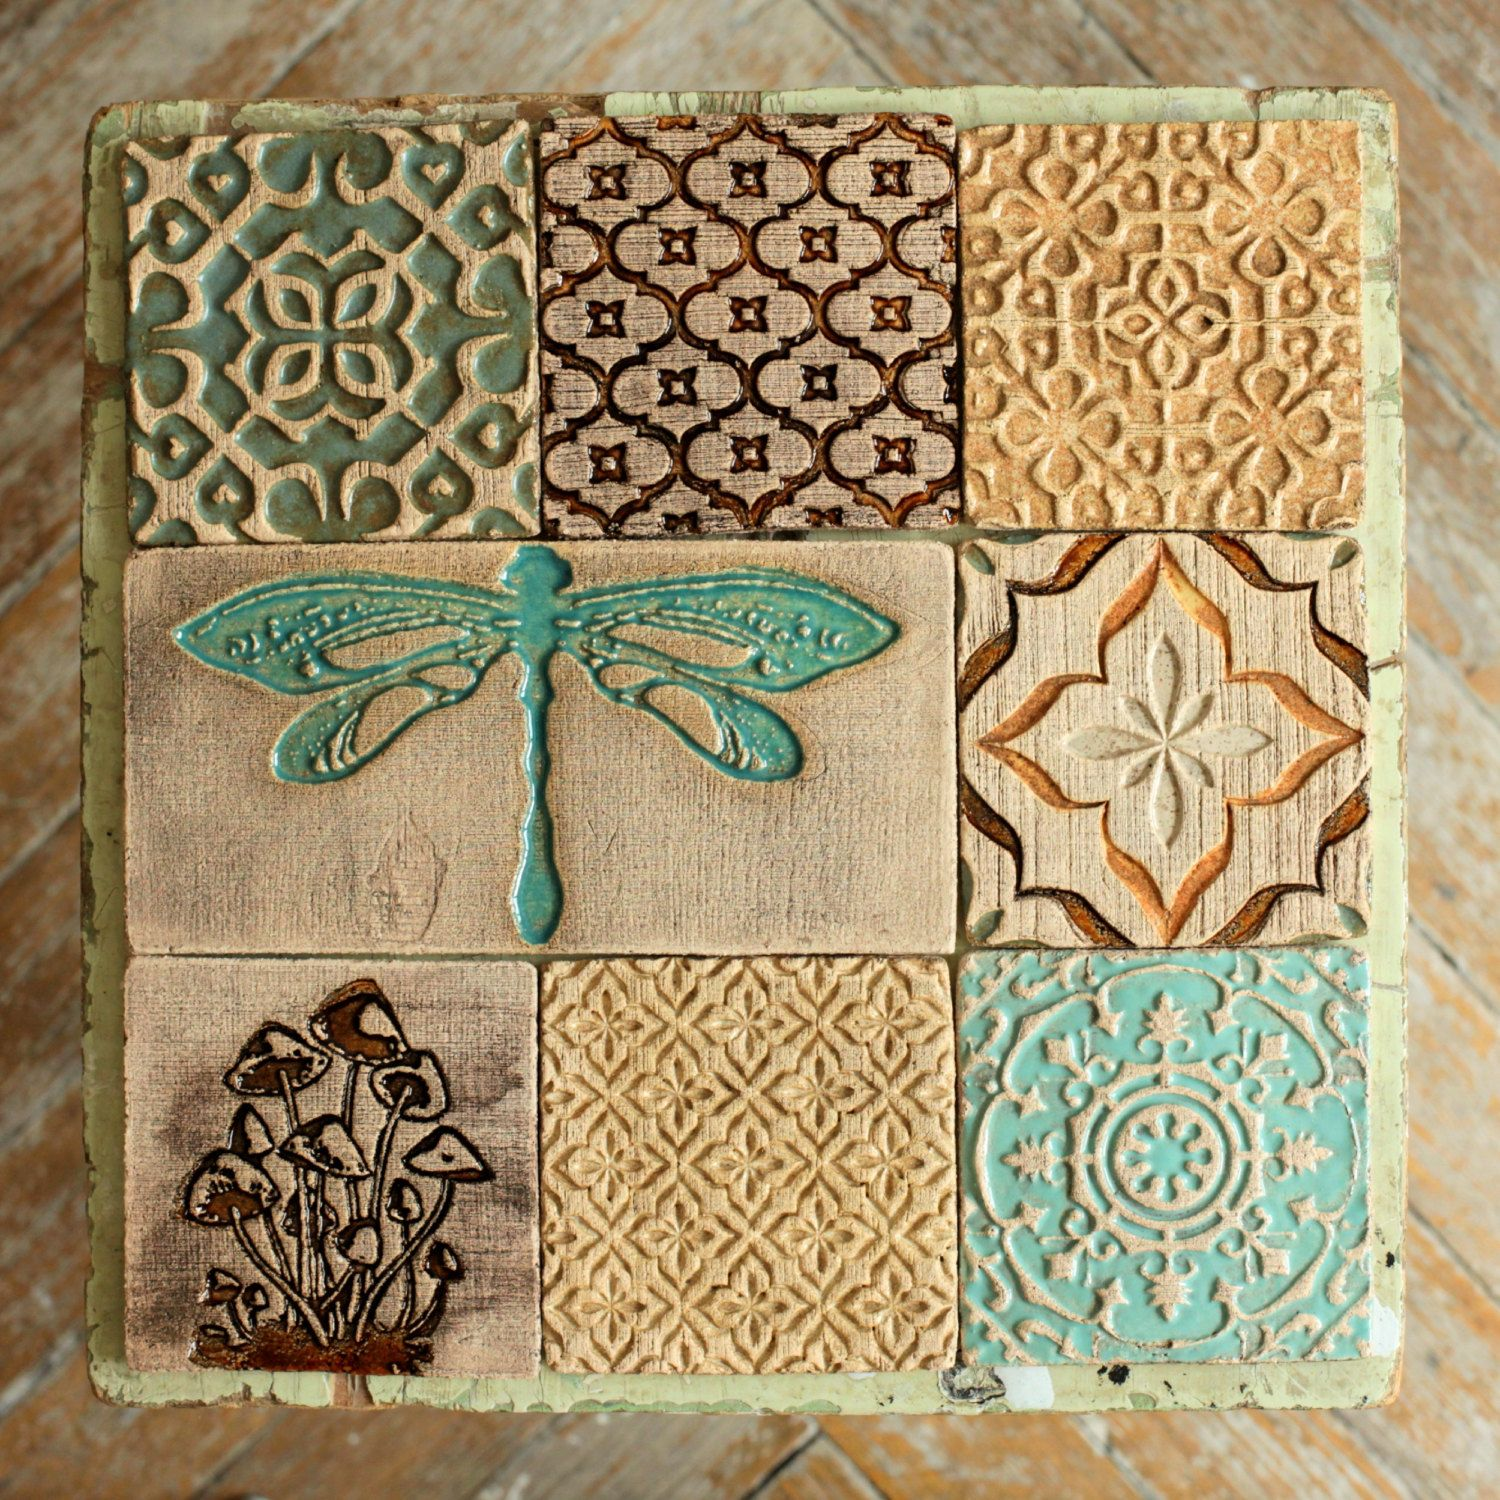 Dragonflymushroom ceramic rustic tile set for kitchenbathroom dragonflymushroom ceramic rustic tile set for kitchenbathroom backsplash by herbariumceramics on etsy dailygadgetfo Gallery